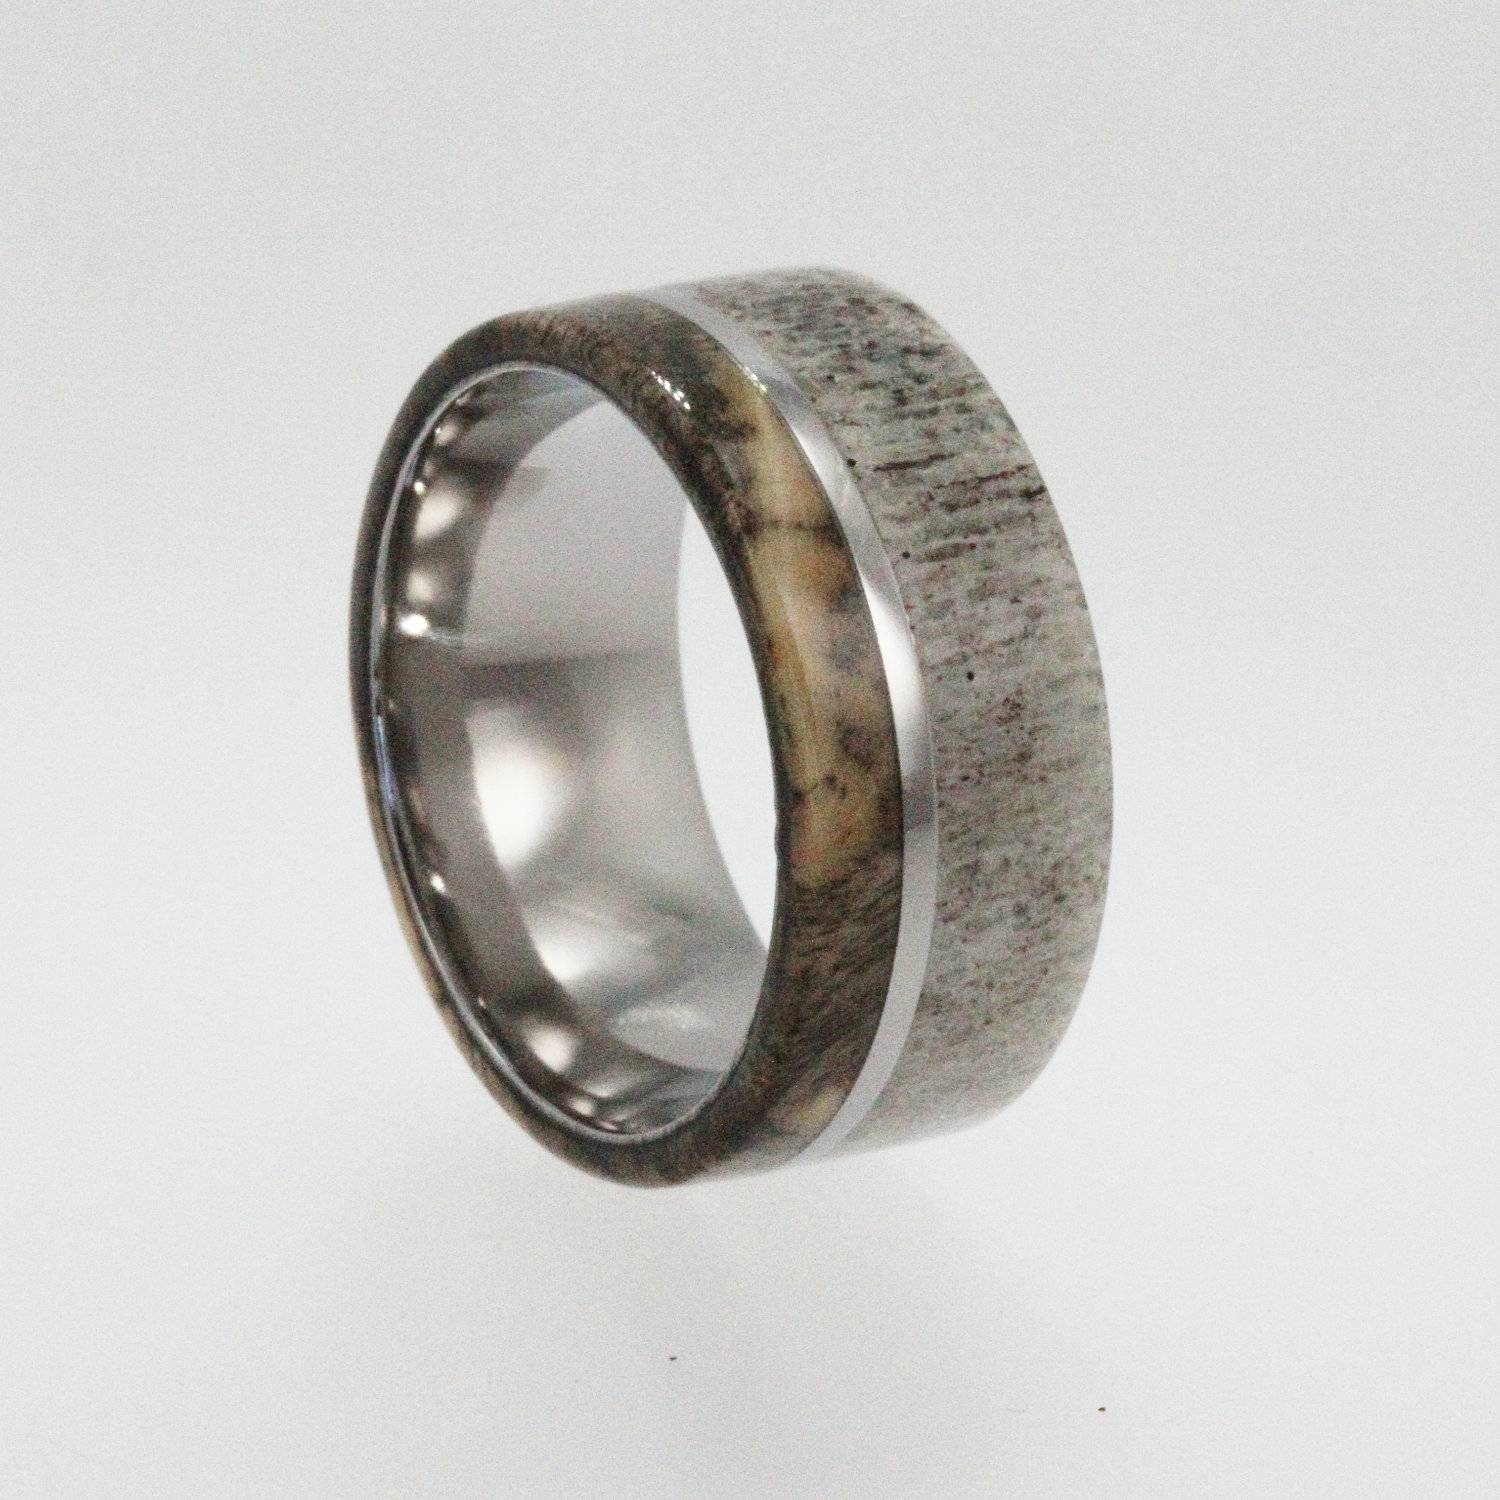 Mens Wedding Band, Titanium Ring, Buck Eye Burl | Ringscollection Regarding Mens Wedding Bands With Deer Antlers (View 6 of 15)